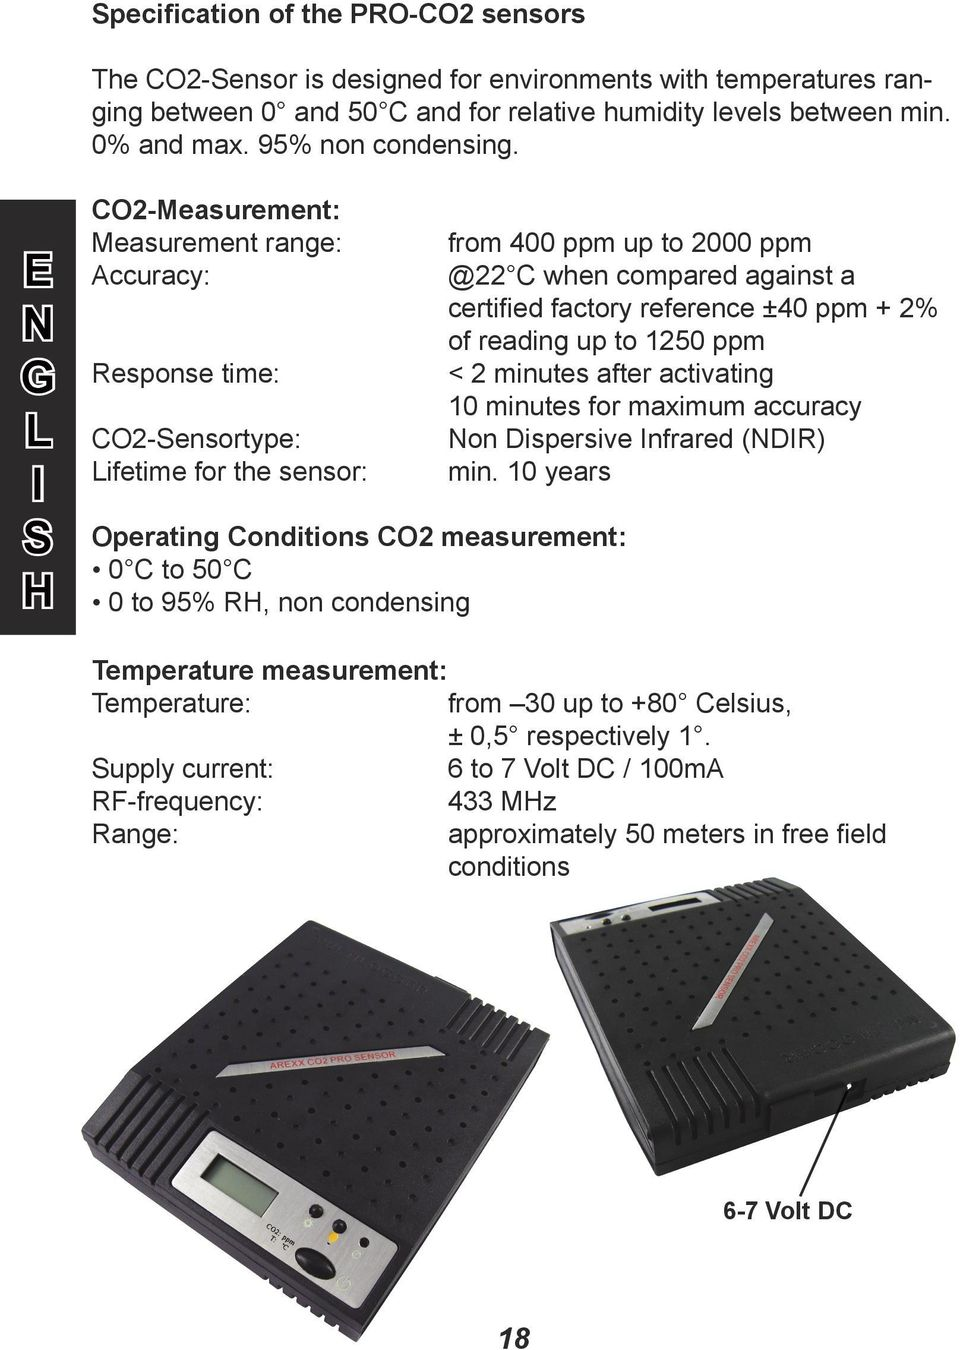 G L I H CO2-Measurement: Measurement range: ccuracy: Response time: CO2-ensortype: Lifetime for the sensor: Operating Conditions CO2 measurement: 0 C to 50 C 0 to 95% RH, non condensing from 400 ppm